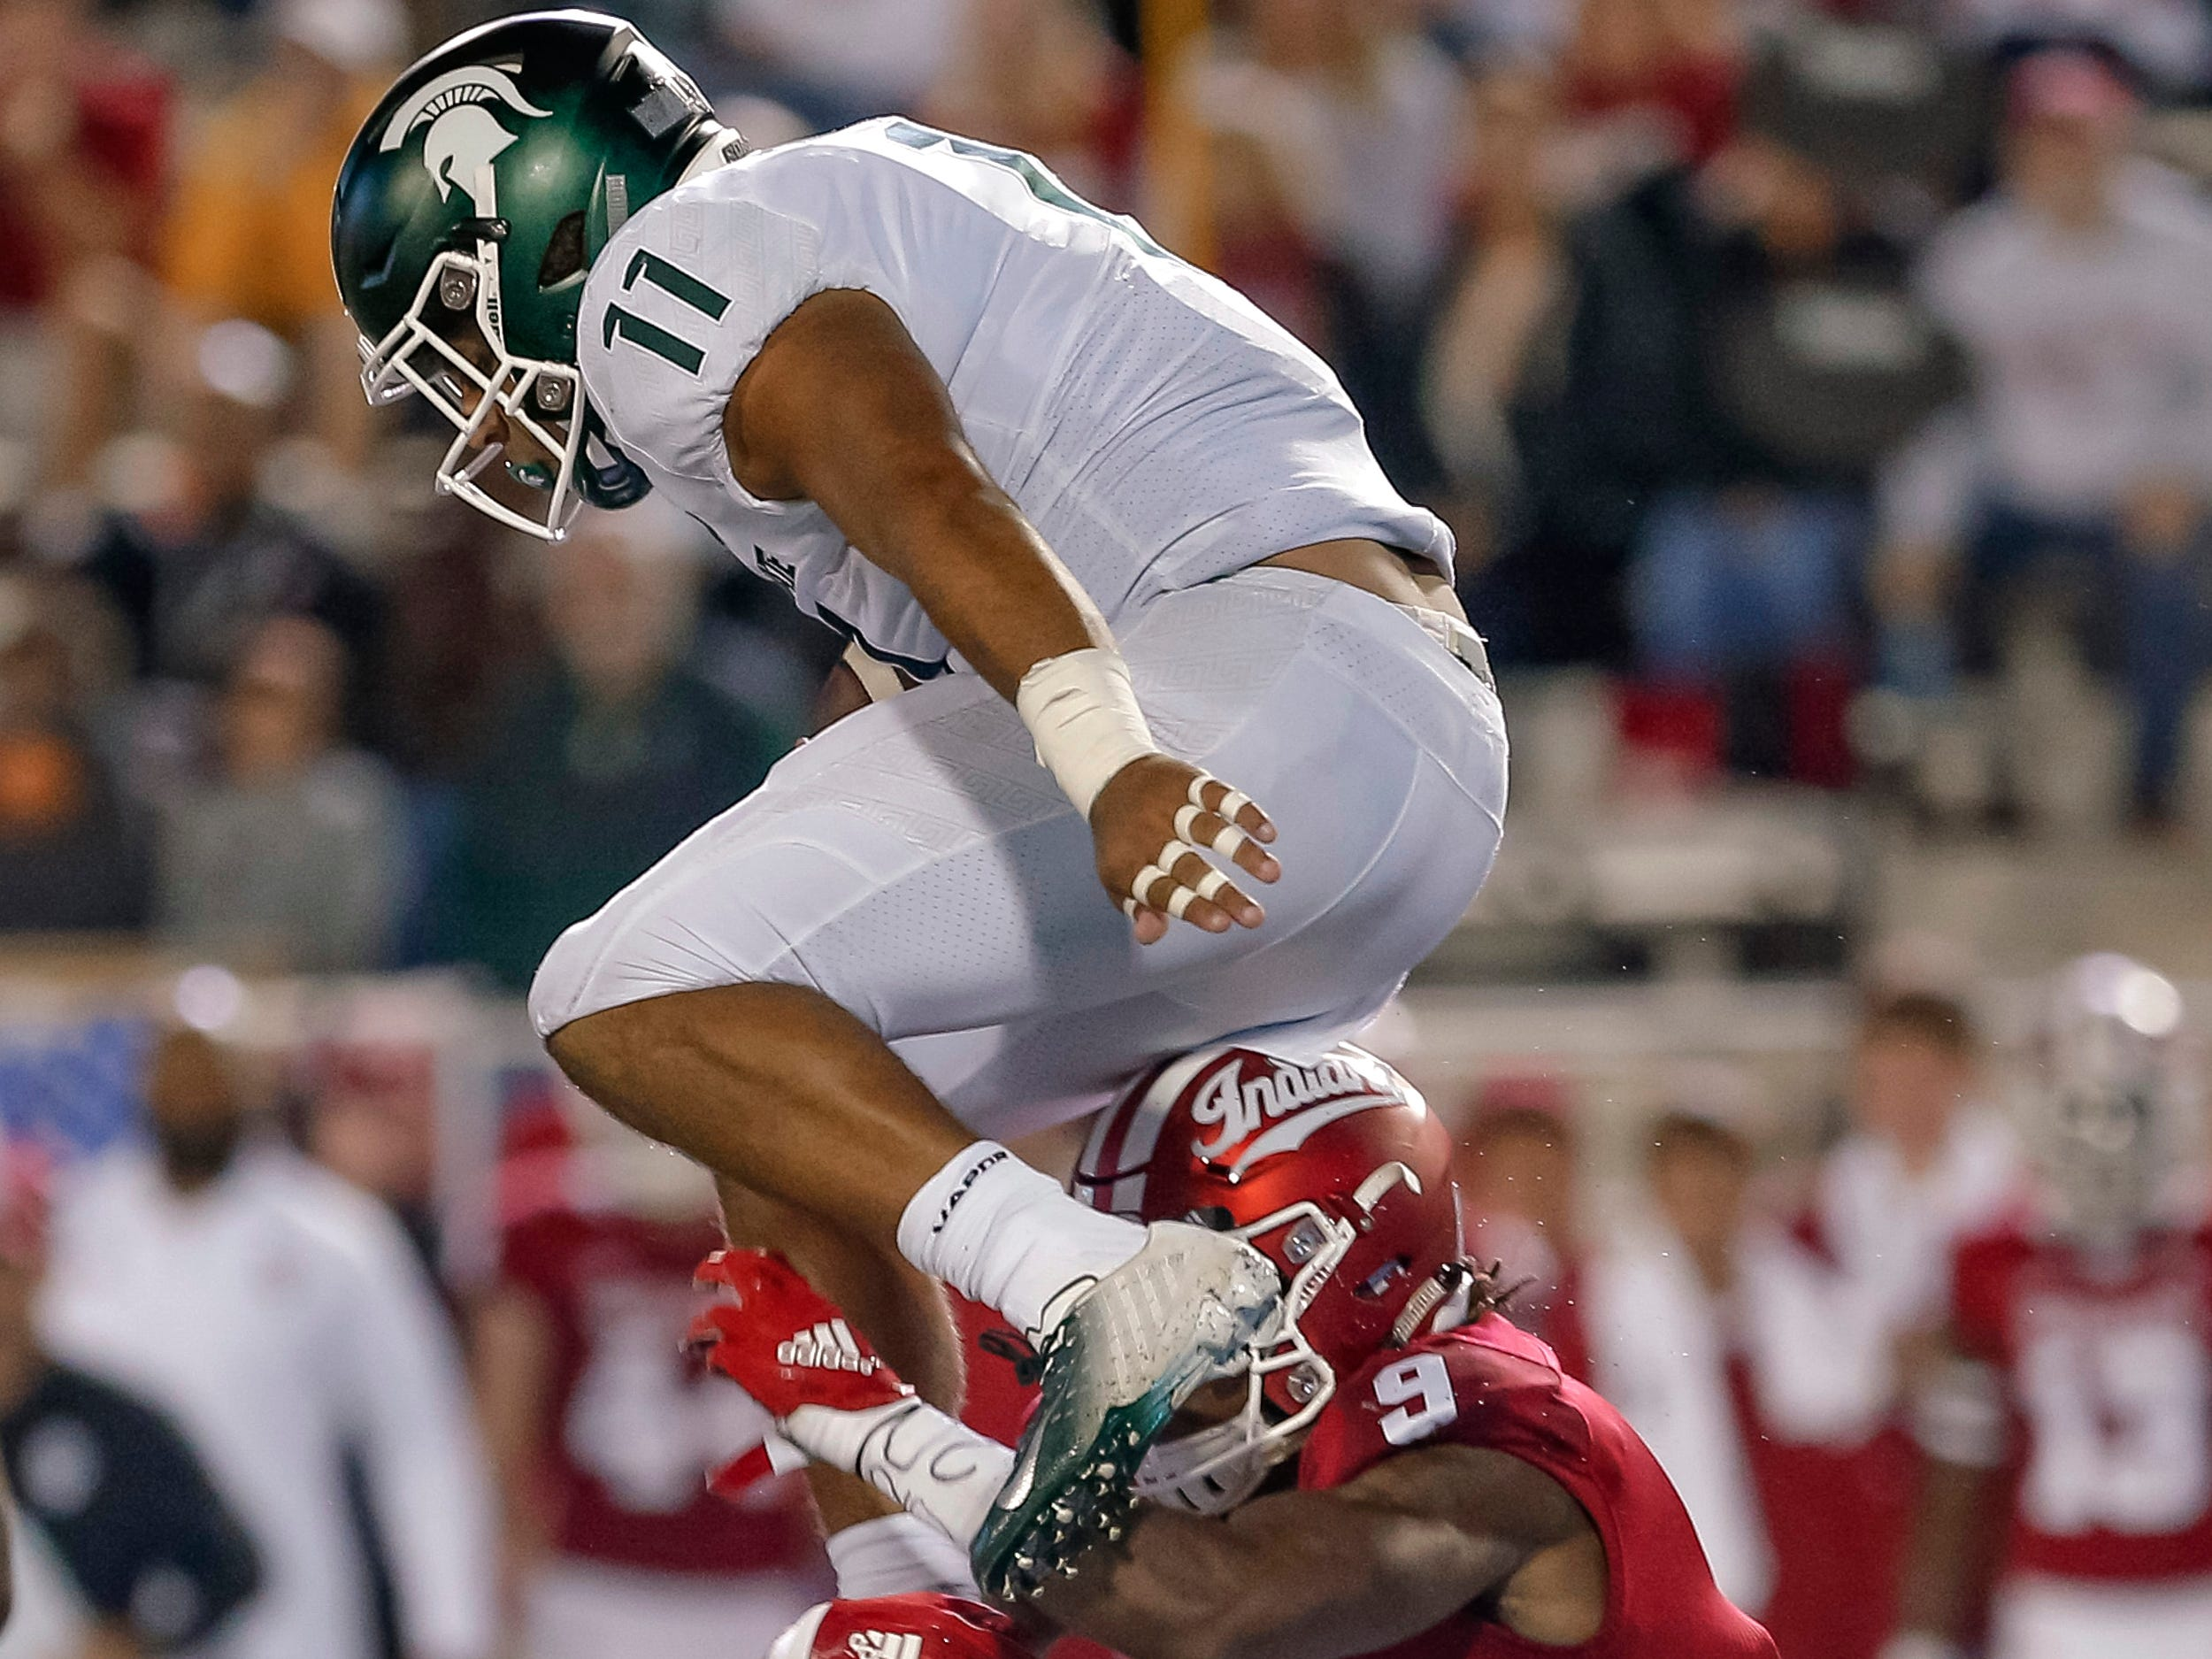 Connor Heyward #11 of the Michigan State Spartans leaps over Jonathan Crawford #9 of the Indiana Hoosiers during the second half of the game at Memorial Stadium on September 22, 2018 in Bloomington, Indiana.